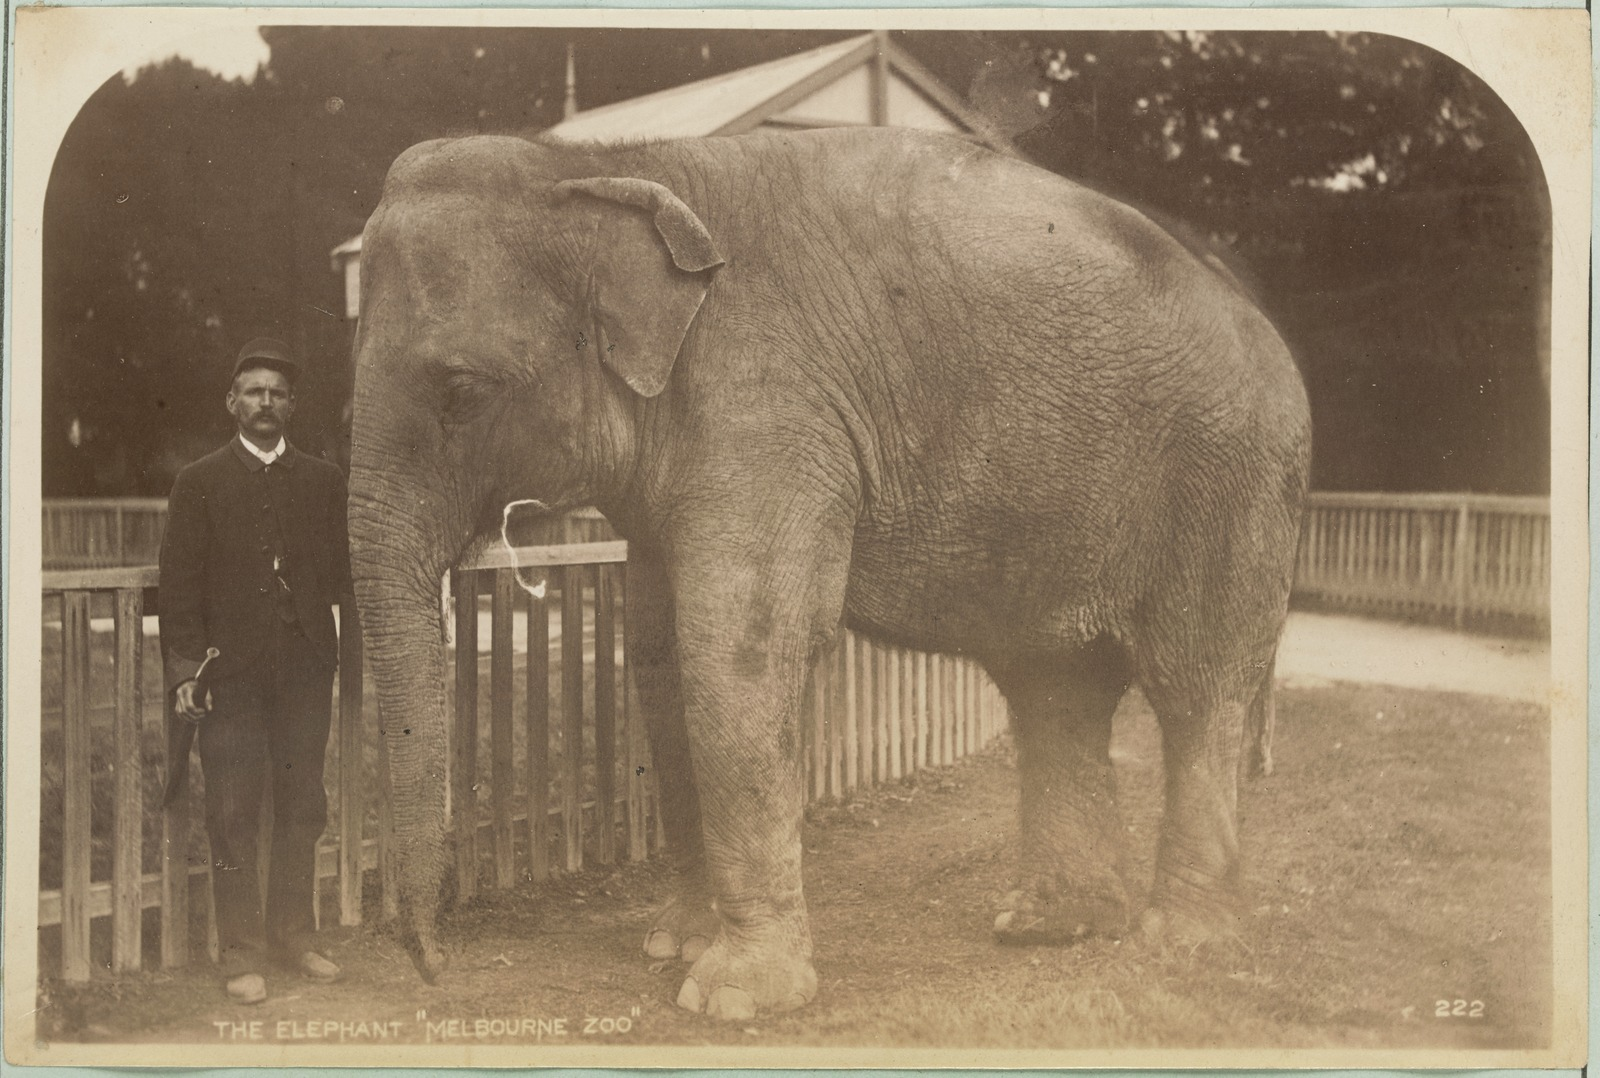 Black and white photo of elephant standing next to man at Melbourne Zoo